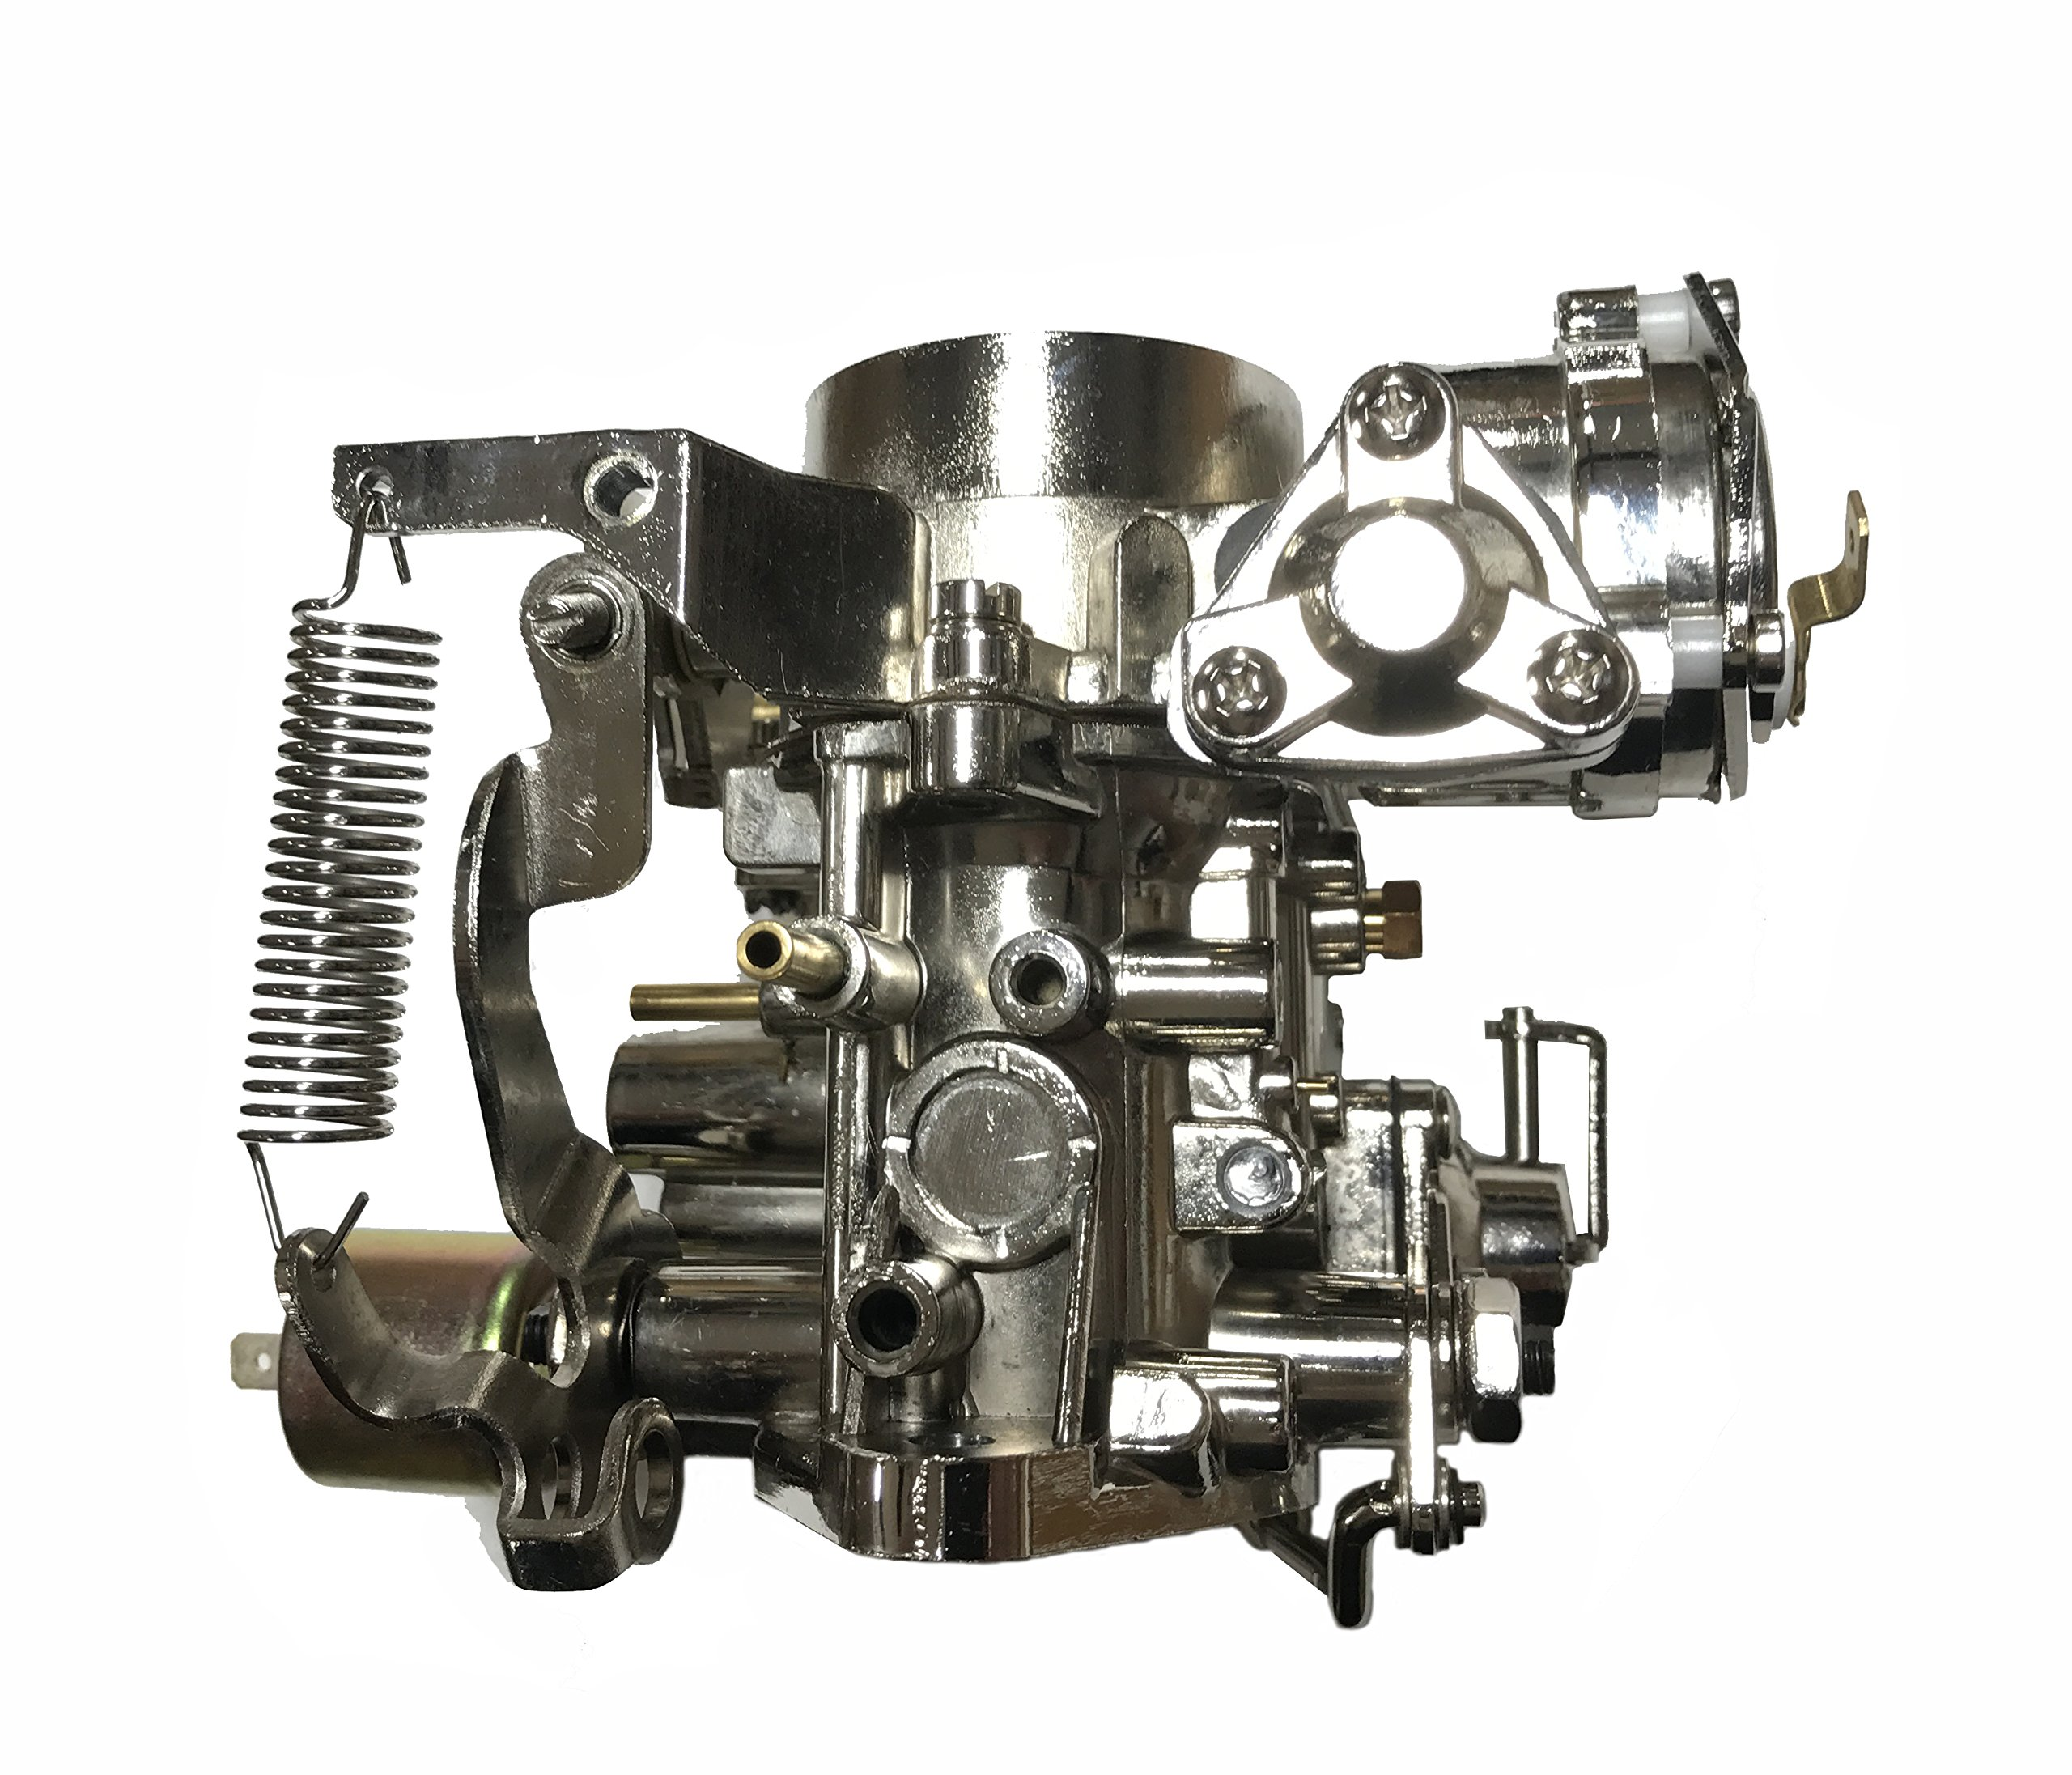 Chrome Volkswagen 34 PICT Carburetor for VW Bug Bus Thing Buggies Ghia 34 PICT-3 CARBURATOR with 12V Choke